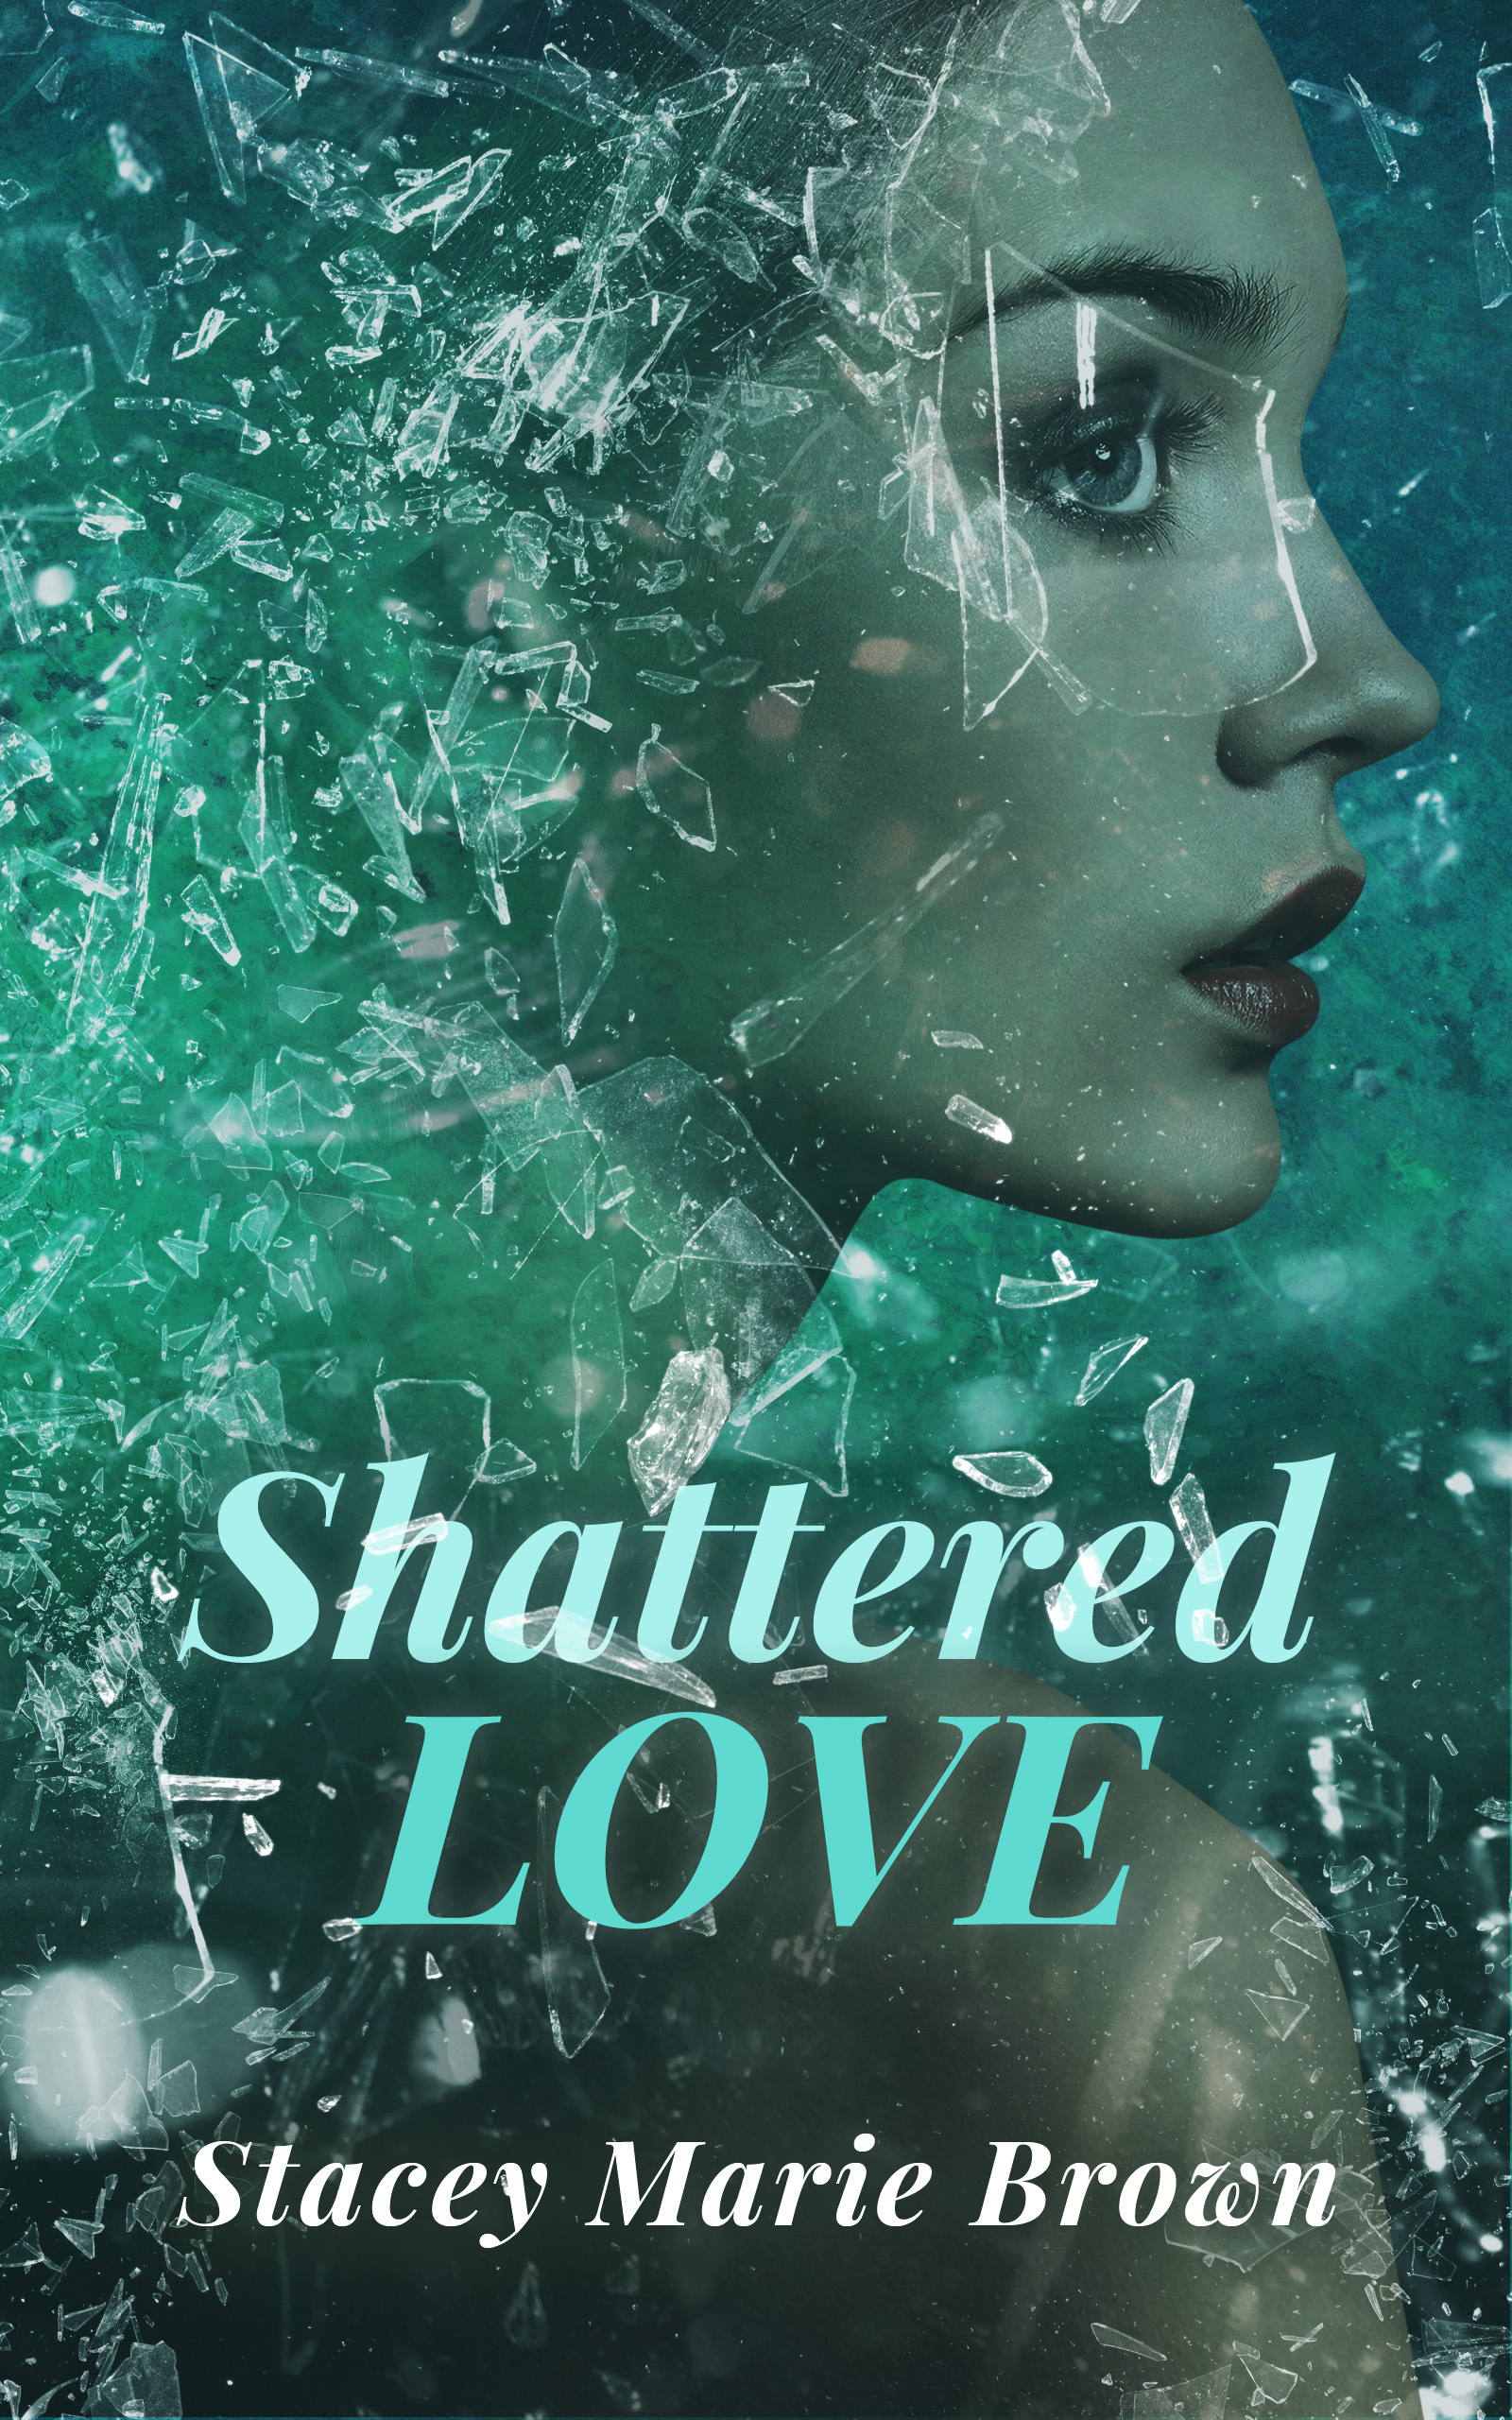 Shattered Love (Blinded Love Series #1), an Ebook by Stacey Marie Brown